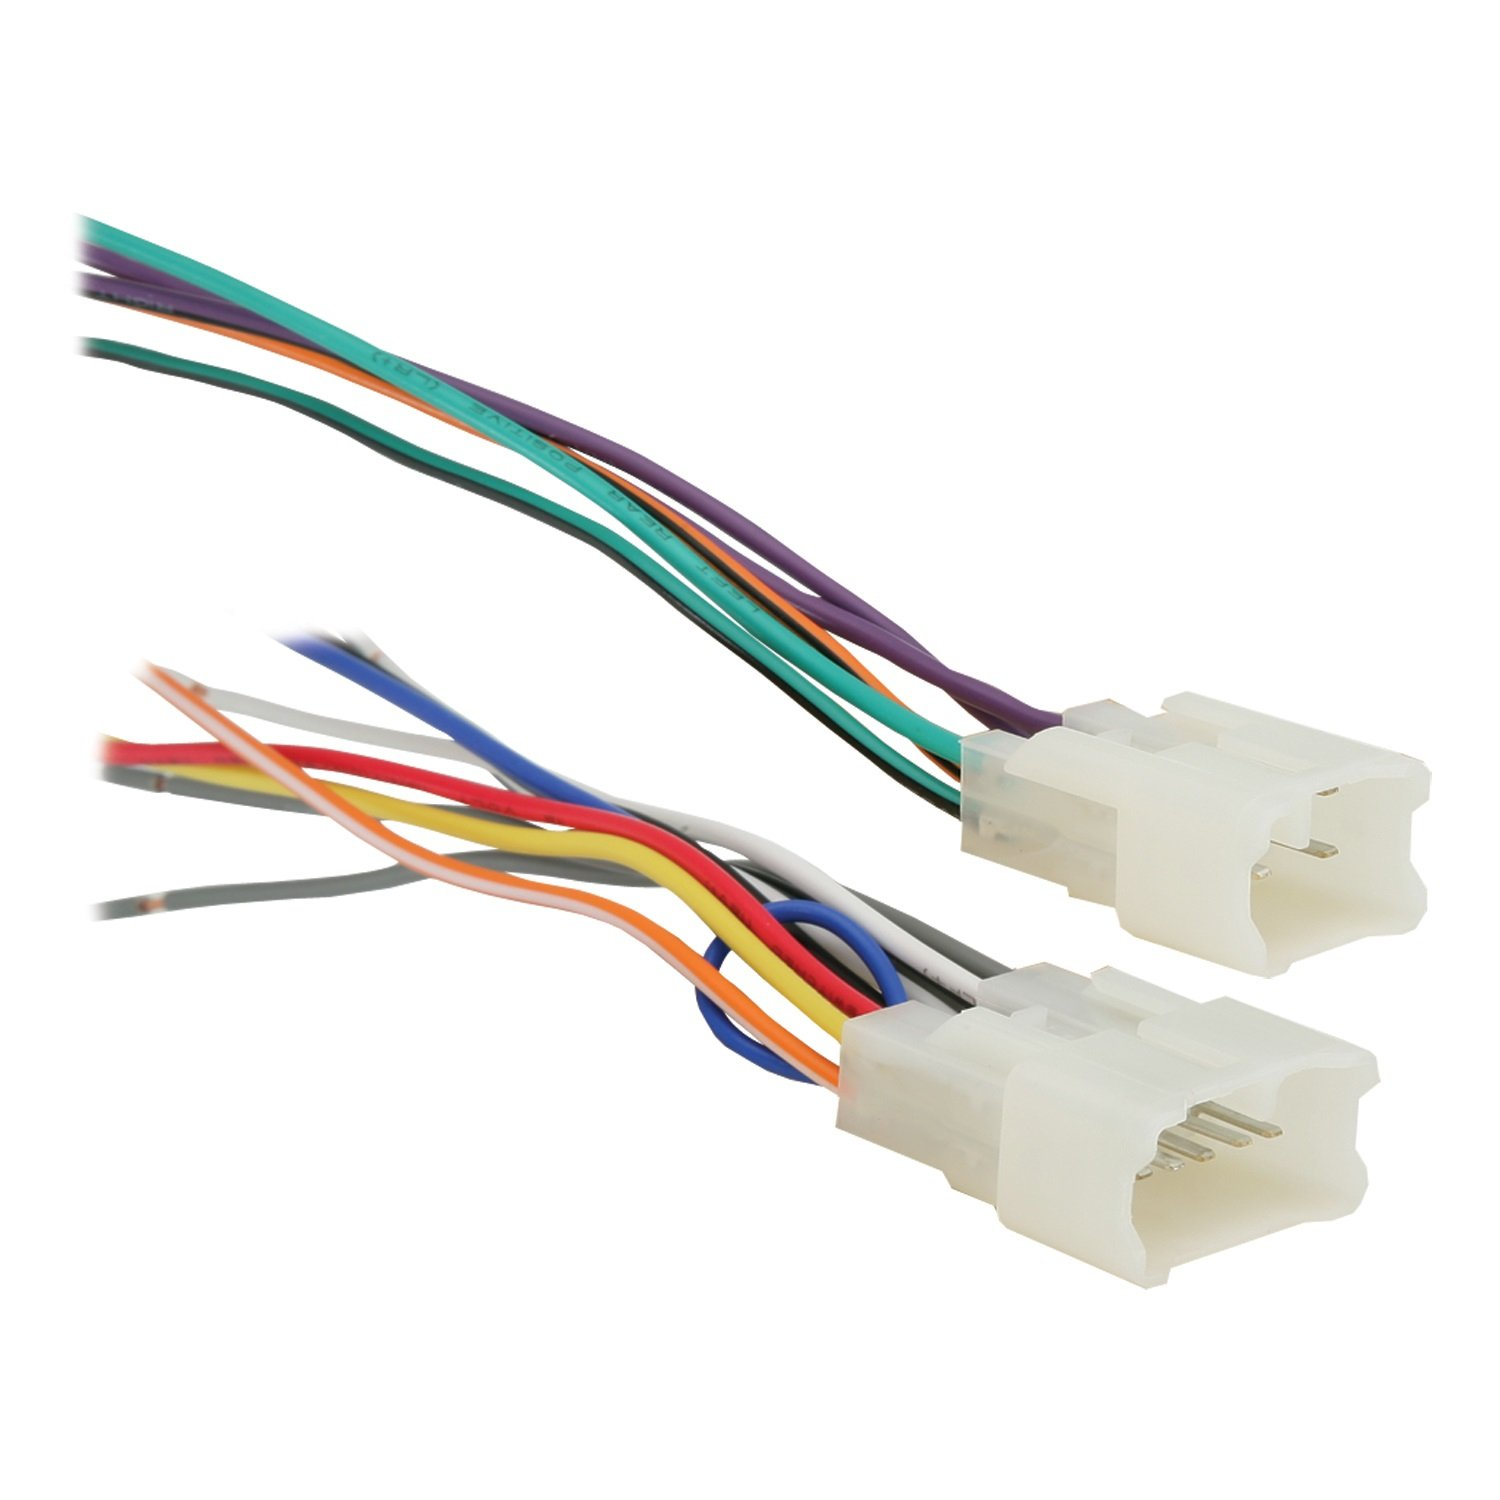 61ifTKeRTLL._SL1500_ amazon com wiring harnesses electrical automotive wiring harness parts at readyjetset.co